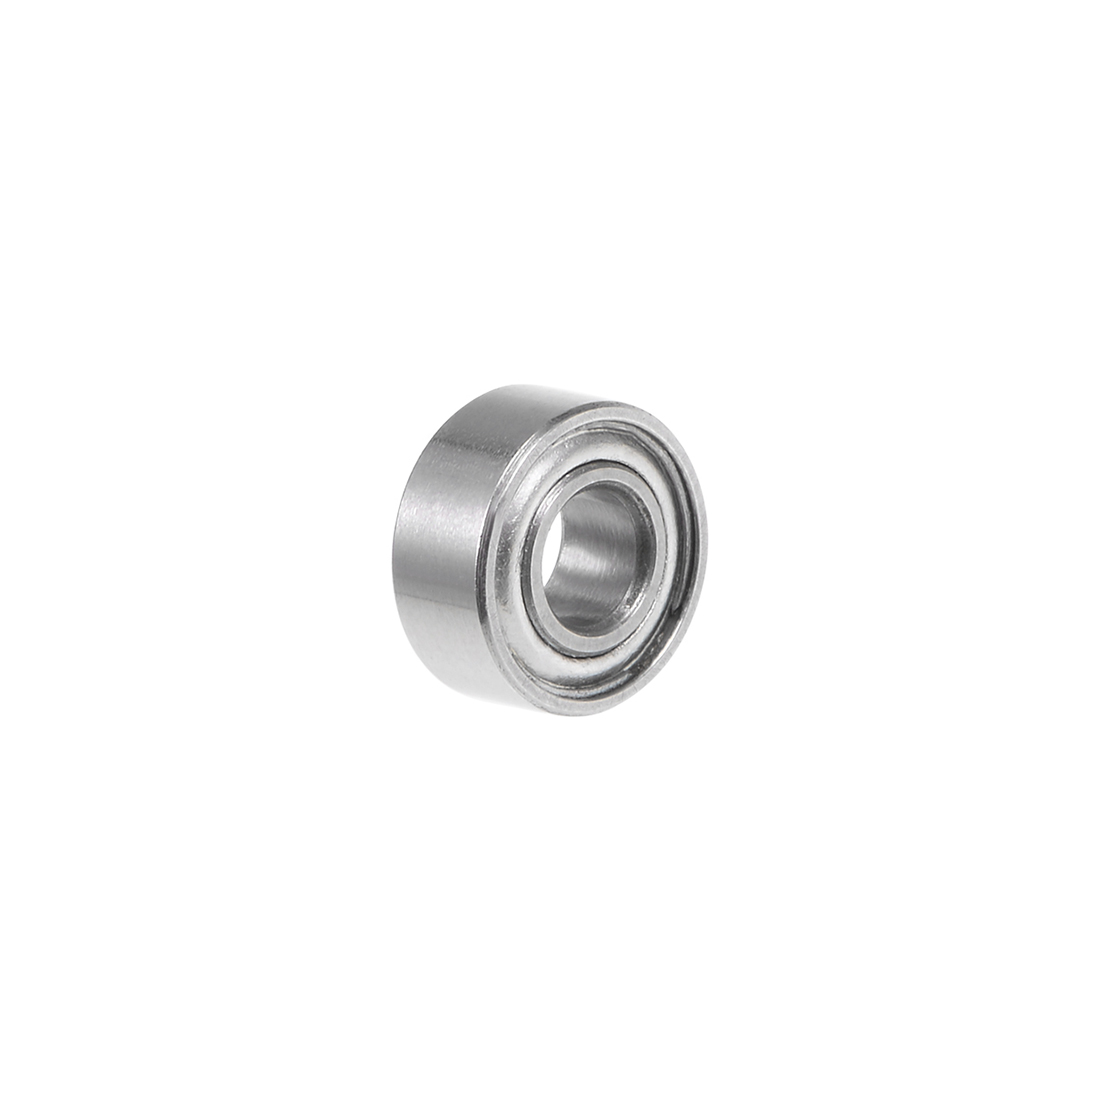 10 683ZZ 3x7x3mm ABEC1 Thin-wall Shielded Deep Groove Ball Bearing